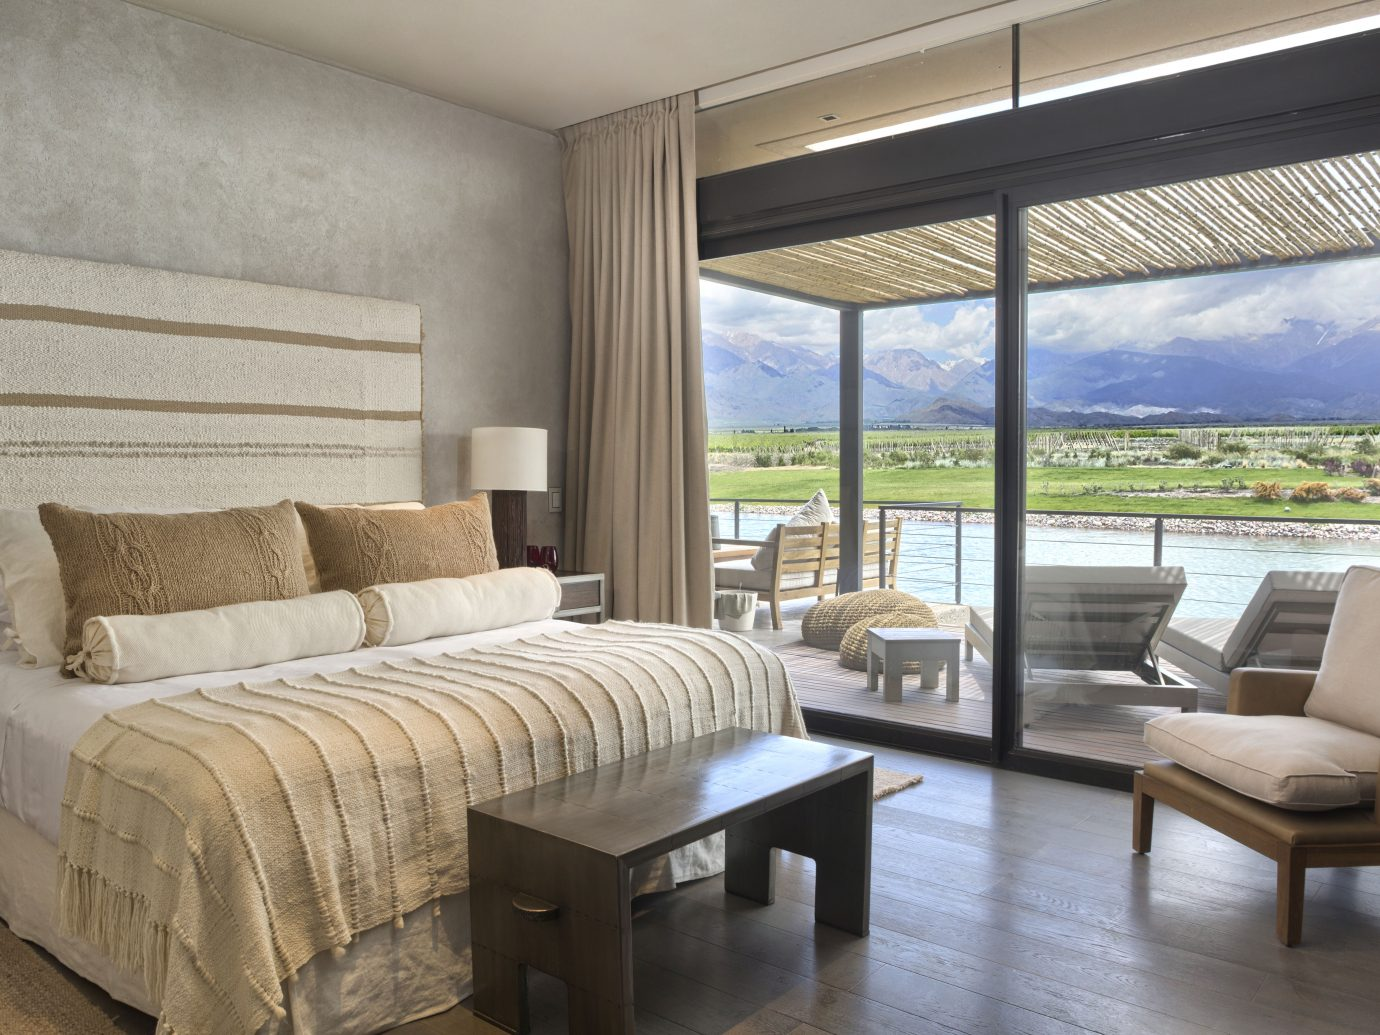 Bedroom at The Vines Resort & Spa